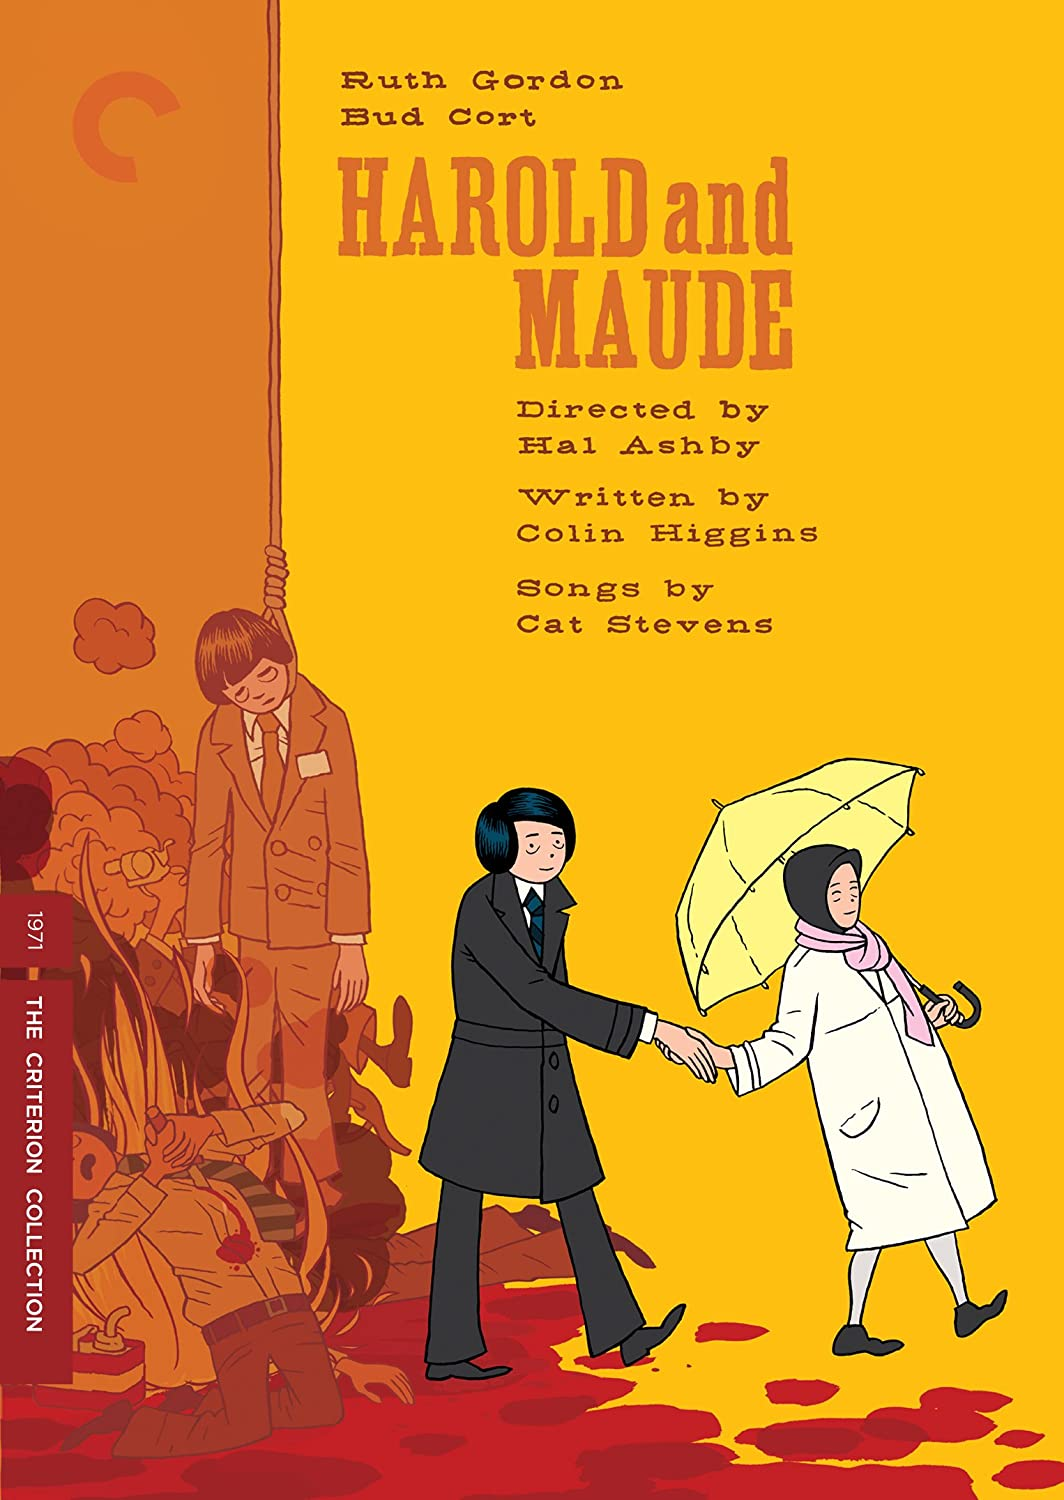 Image result for harold and maude criterion poster